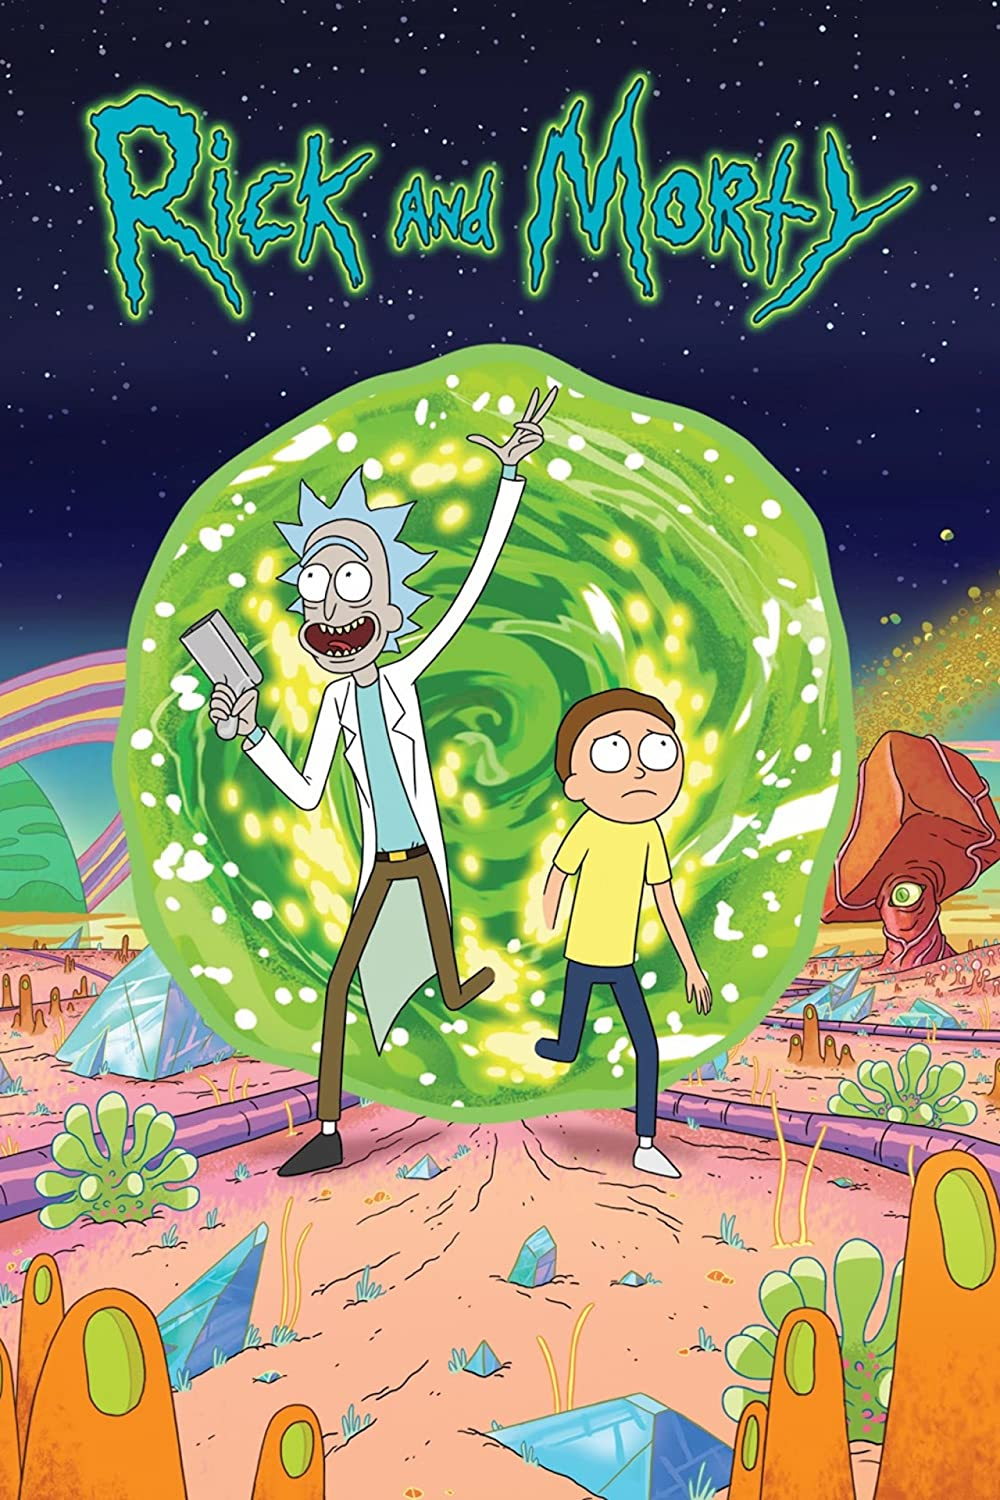 Free Download Rick and Morty Full Movie